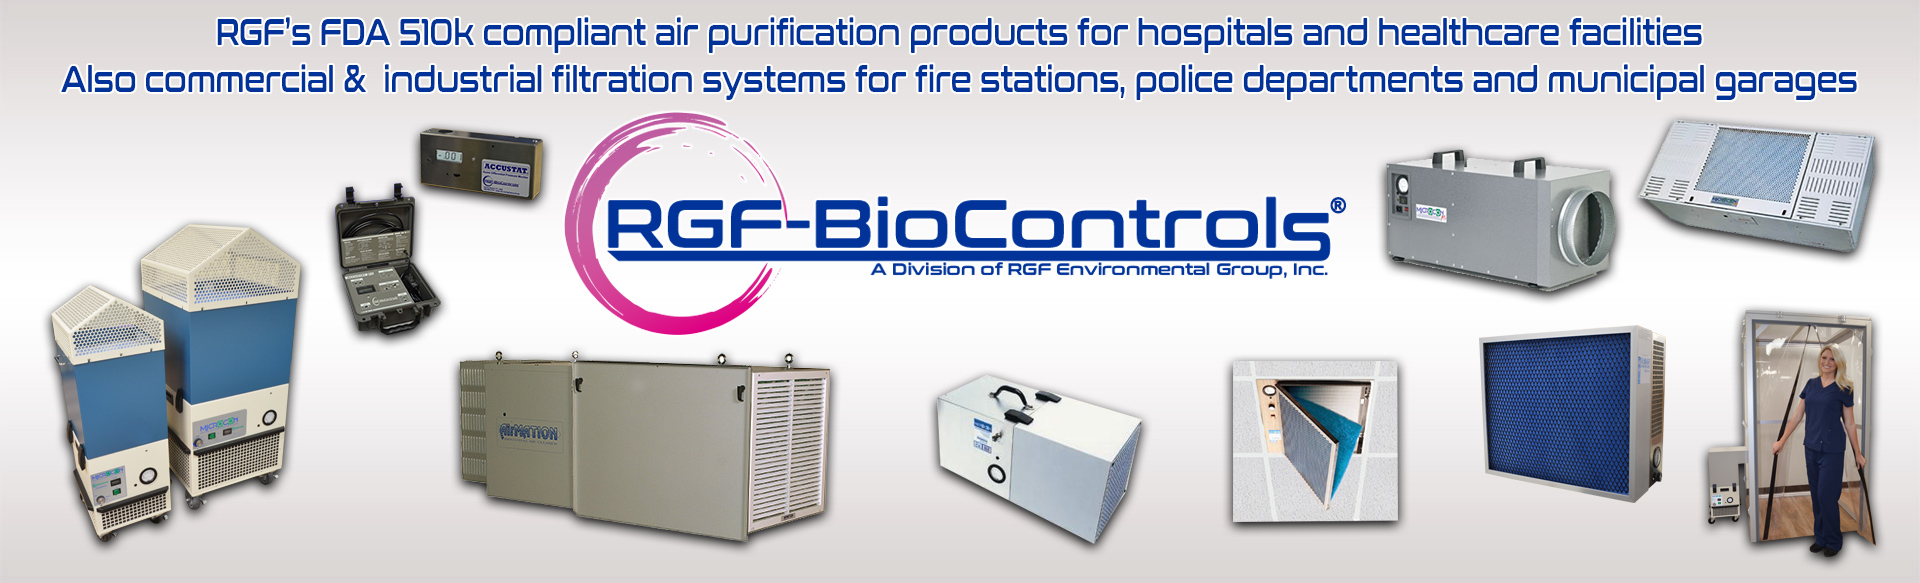 BioControls air page slider